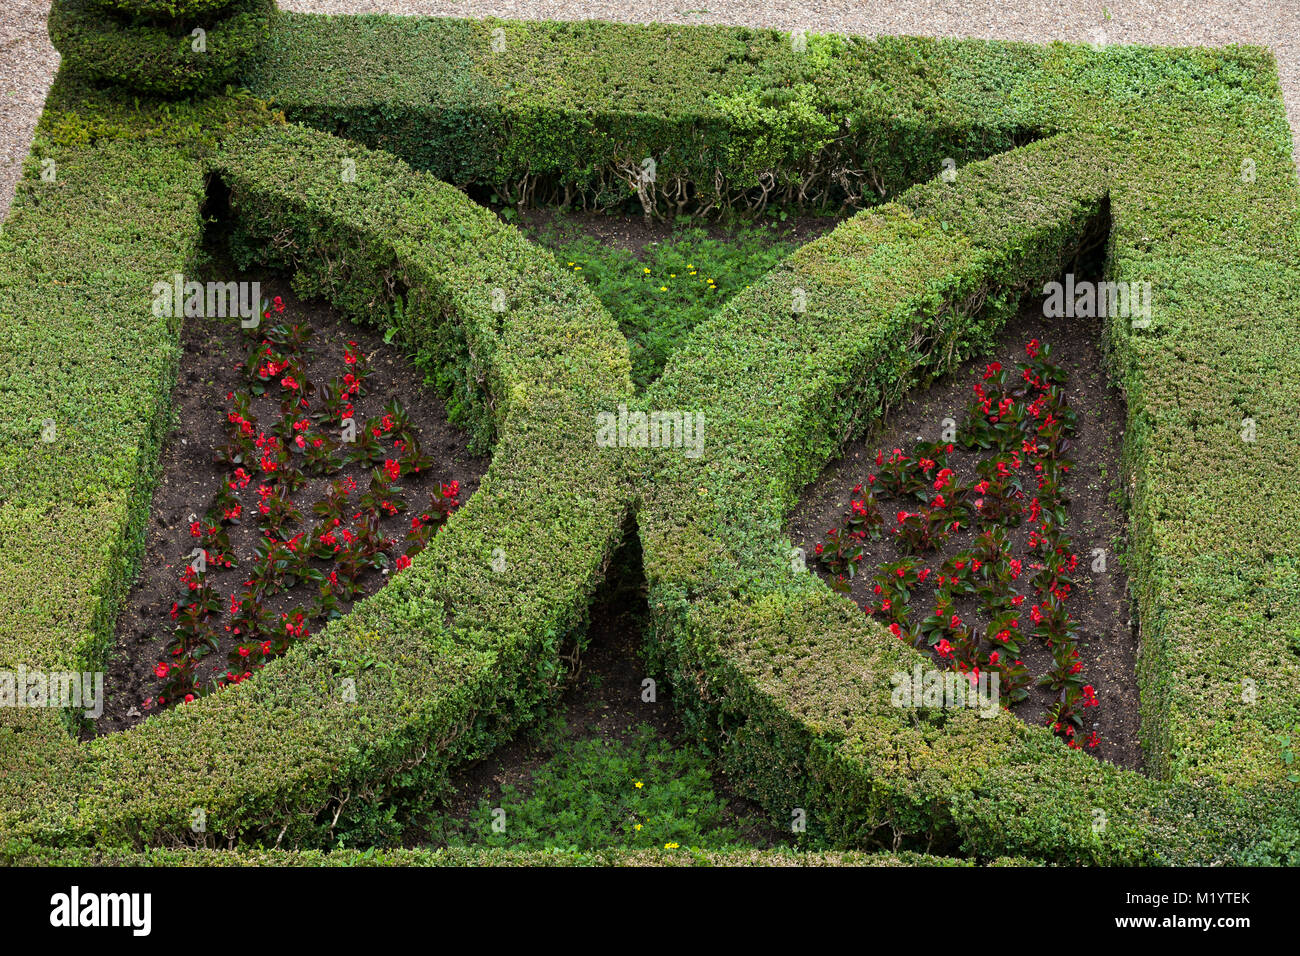 Splendid, decorative gardens at Villandry castle in France Stock ...